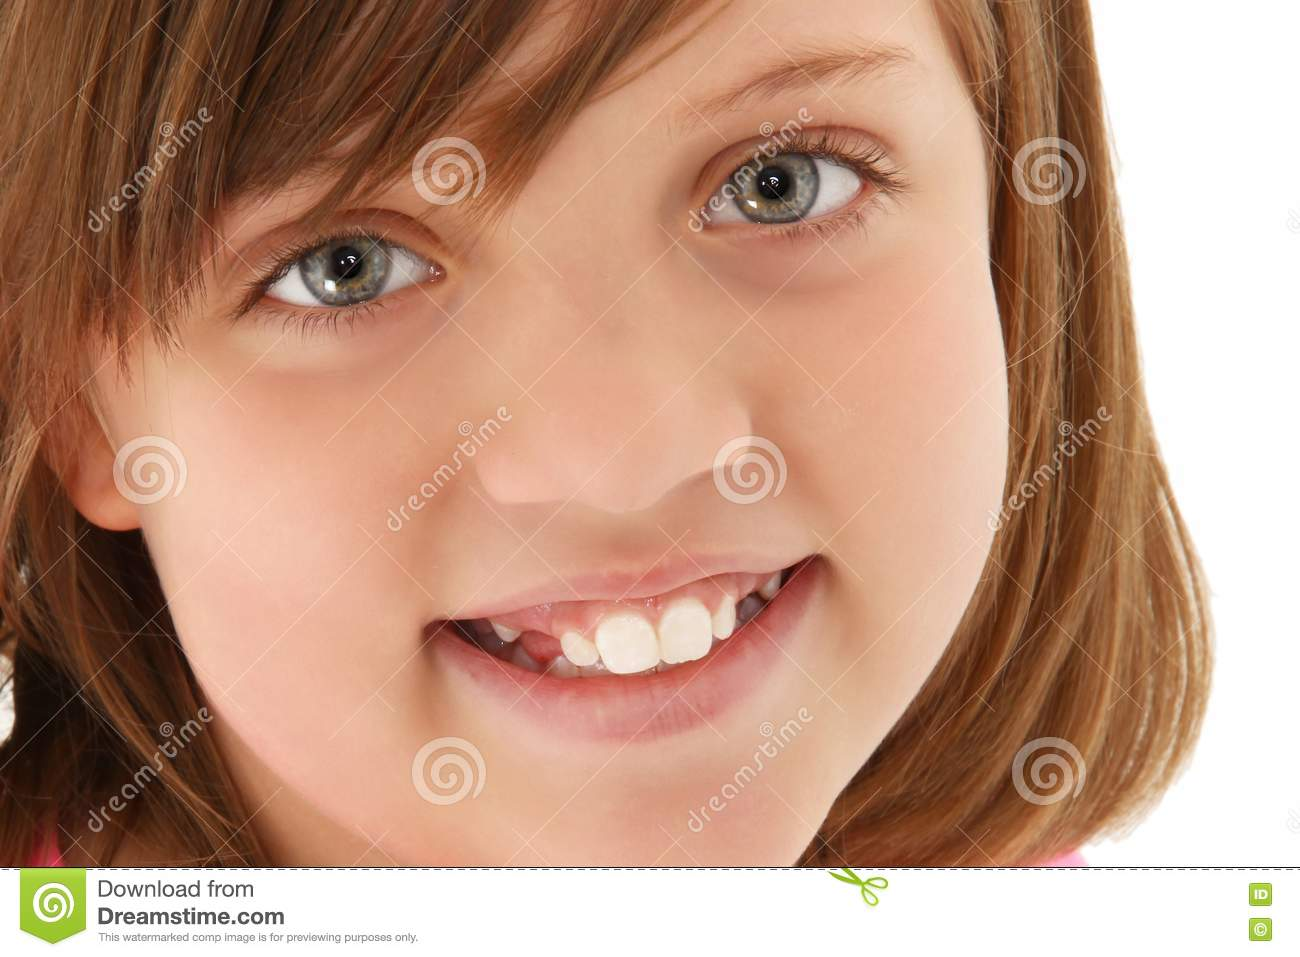 Beautiful 10 Year Old Girl Stock Image. Image Of Pretty